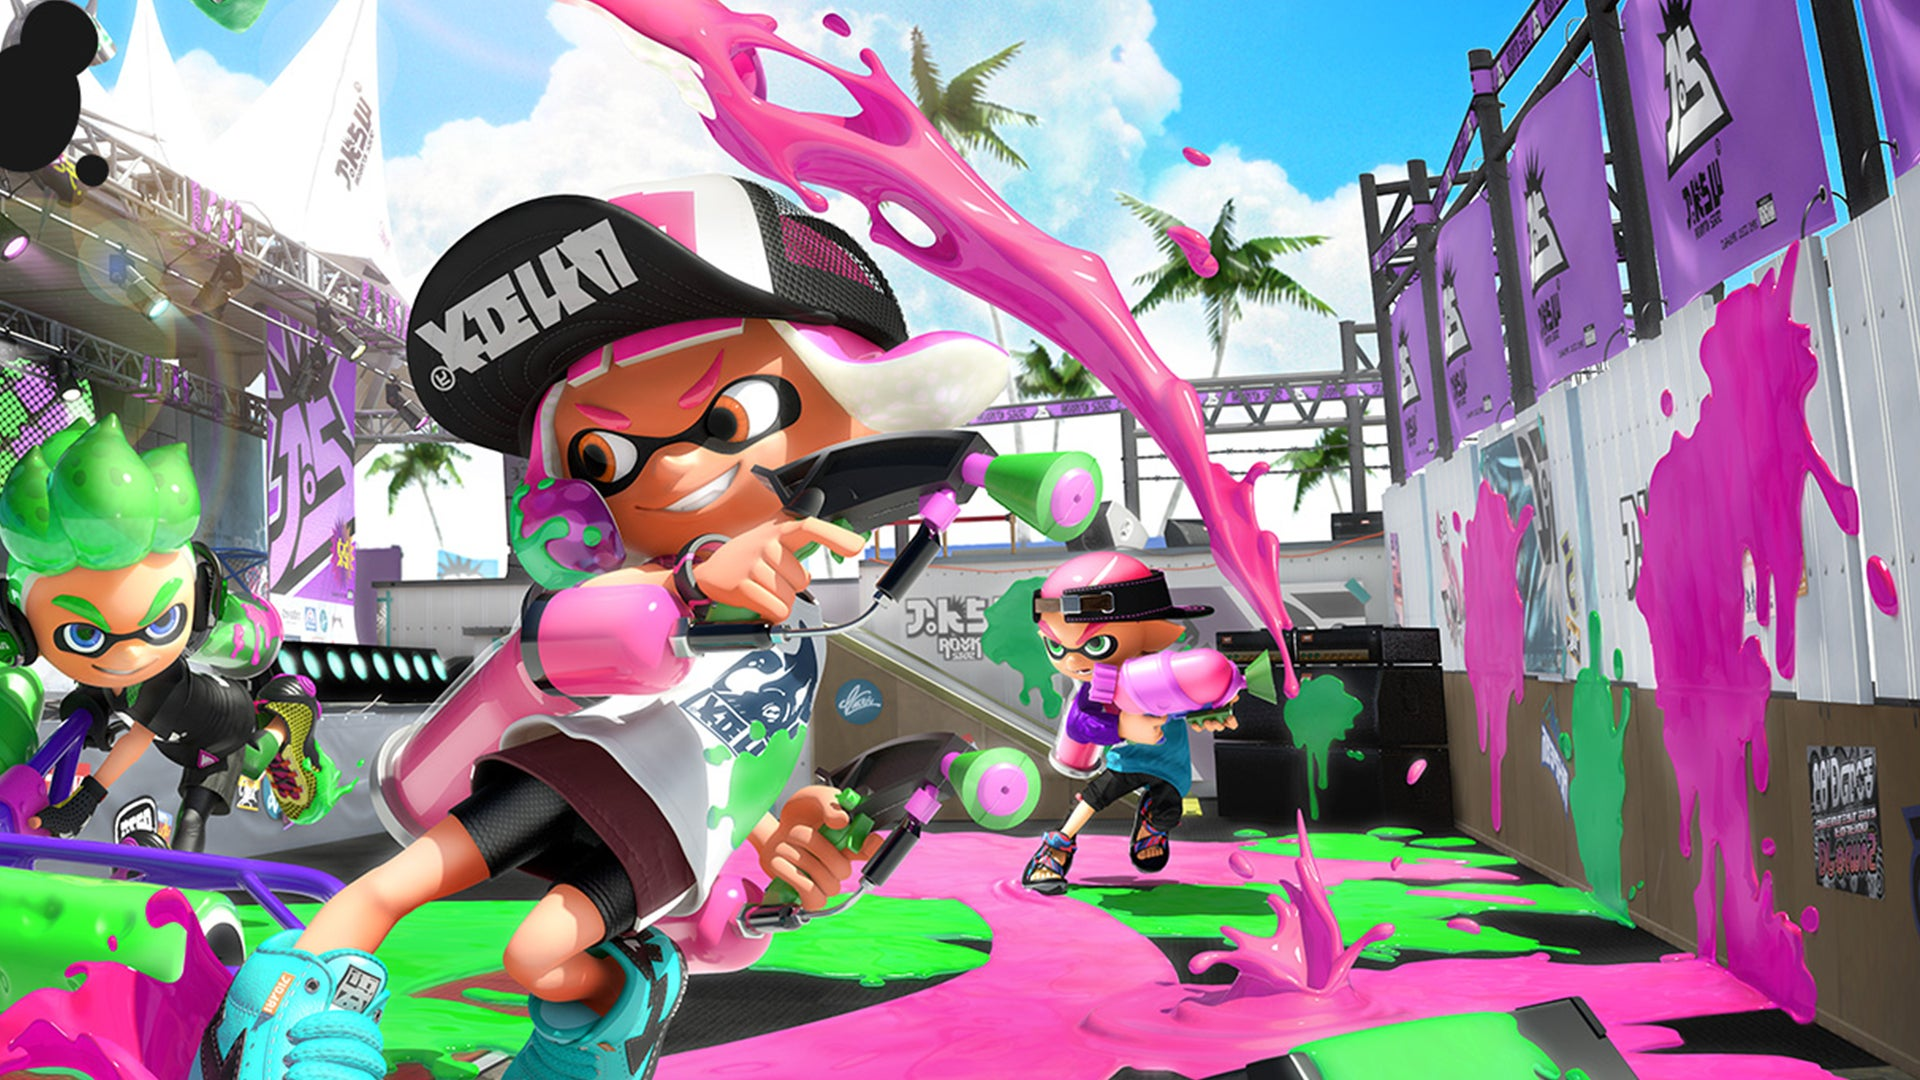 splatoon 2 gets a major update which adds 100 pieces of new gear and